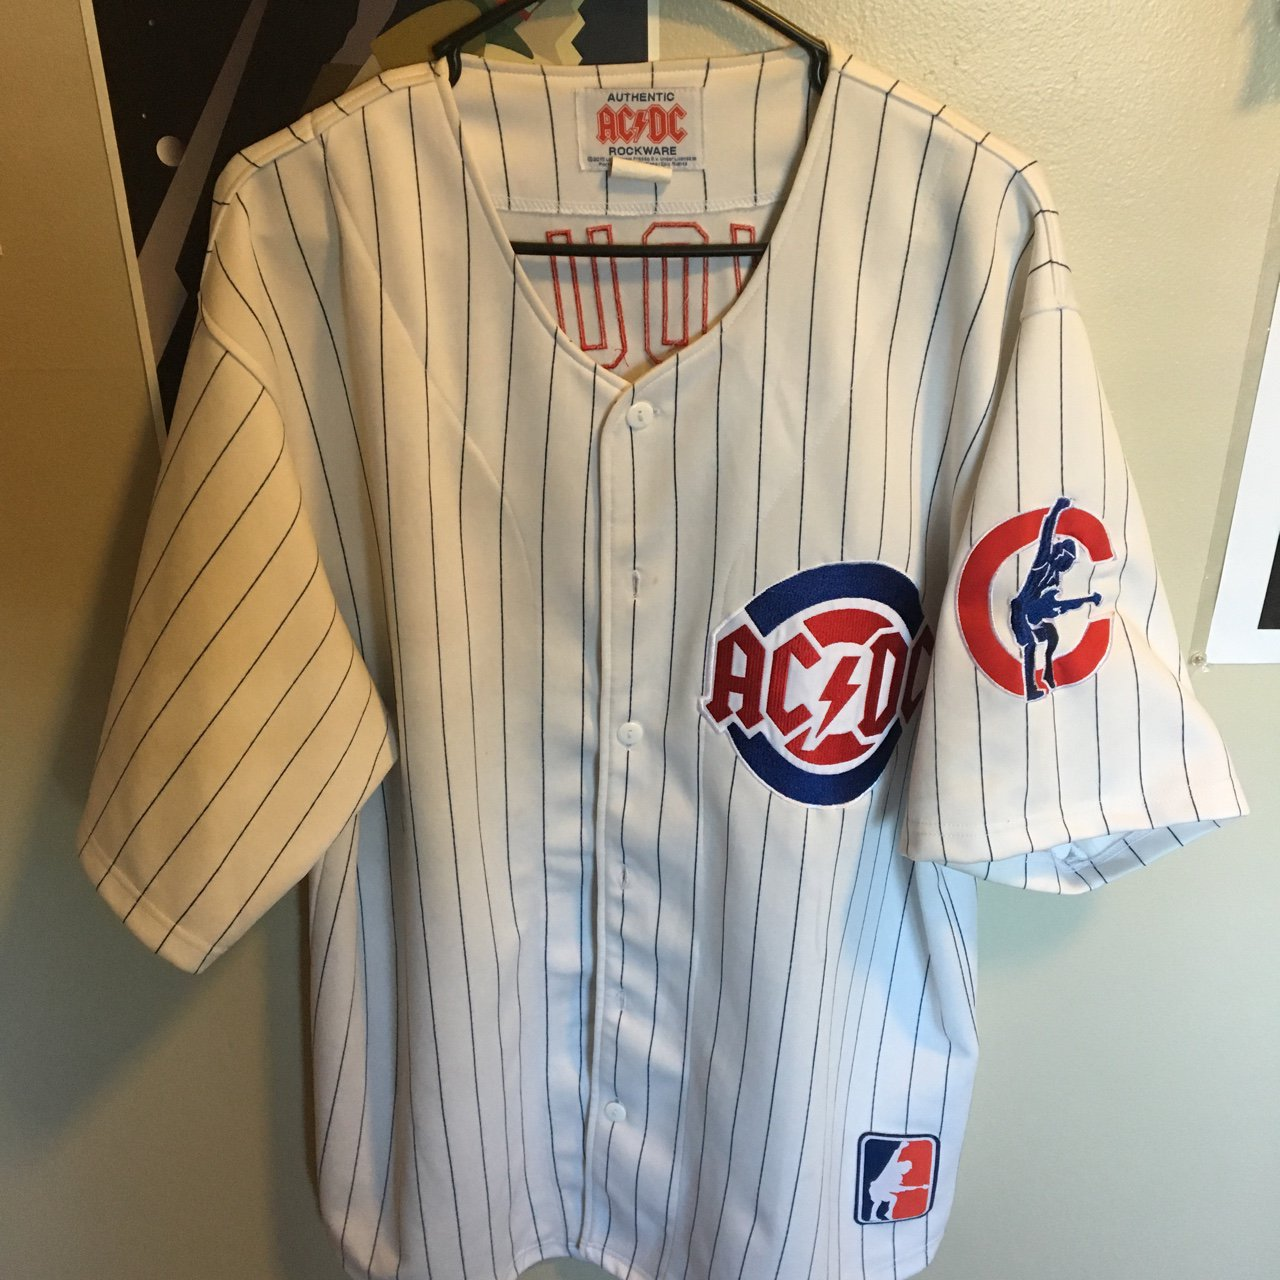 Acdc Baseball Jersey Chicago Cubs Limited Edition Acdc Depop